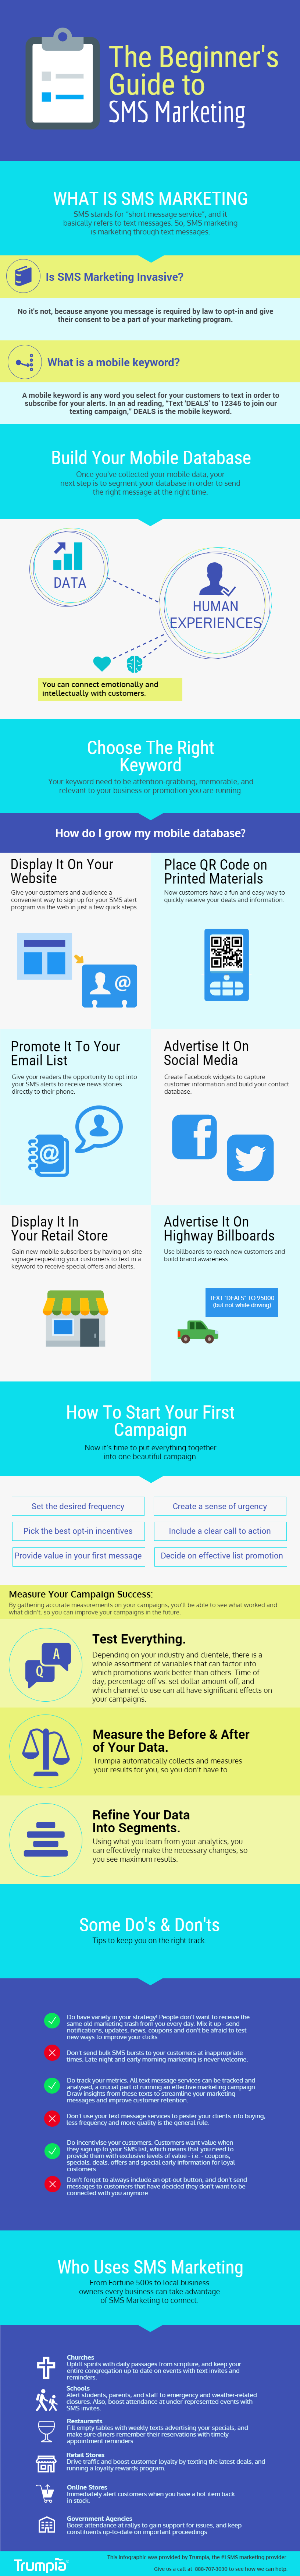 Why You Should Use SMS for Marketing – An Infographic